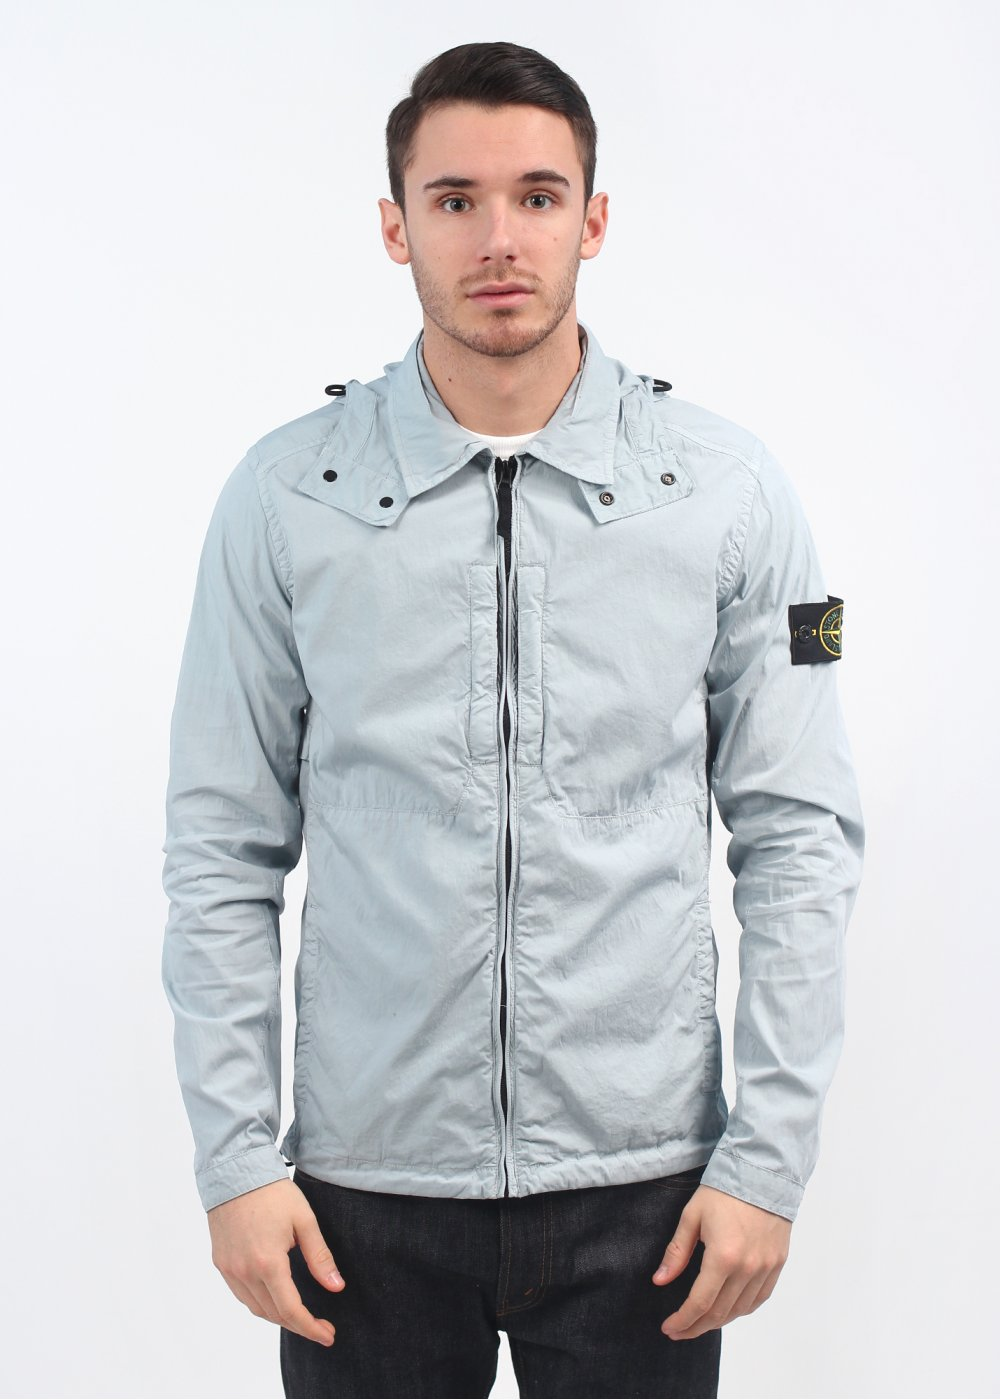 Jacket Over Shirt - JacketIn